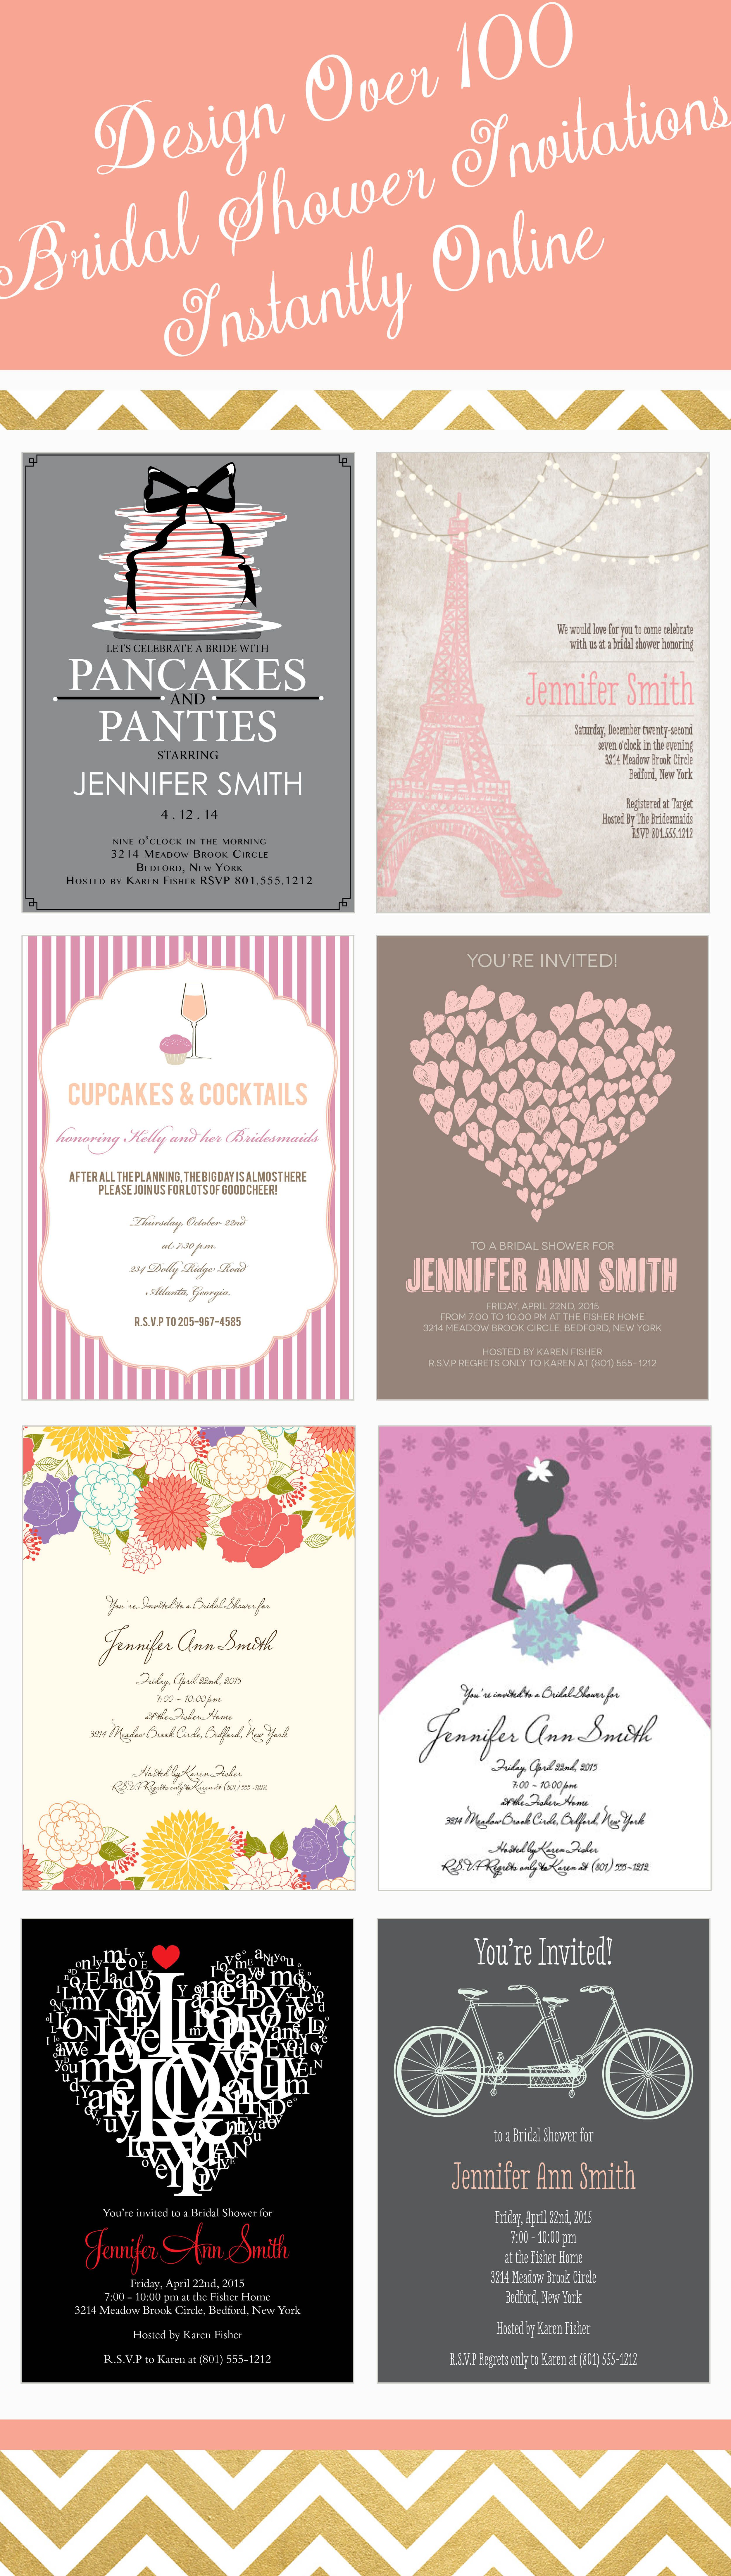 inexpensive wedding shower invitations%0A Bridal Shower Centerpiece Ideas  Affordable and Adorable    DIY Projects    Pinterest   Bridal shower centerpieces  Shower centerpieces and Bridal  showers